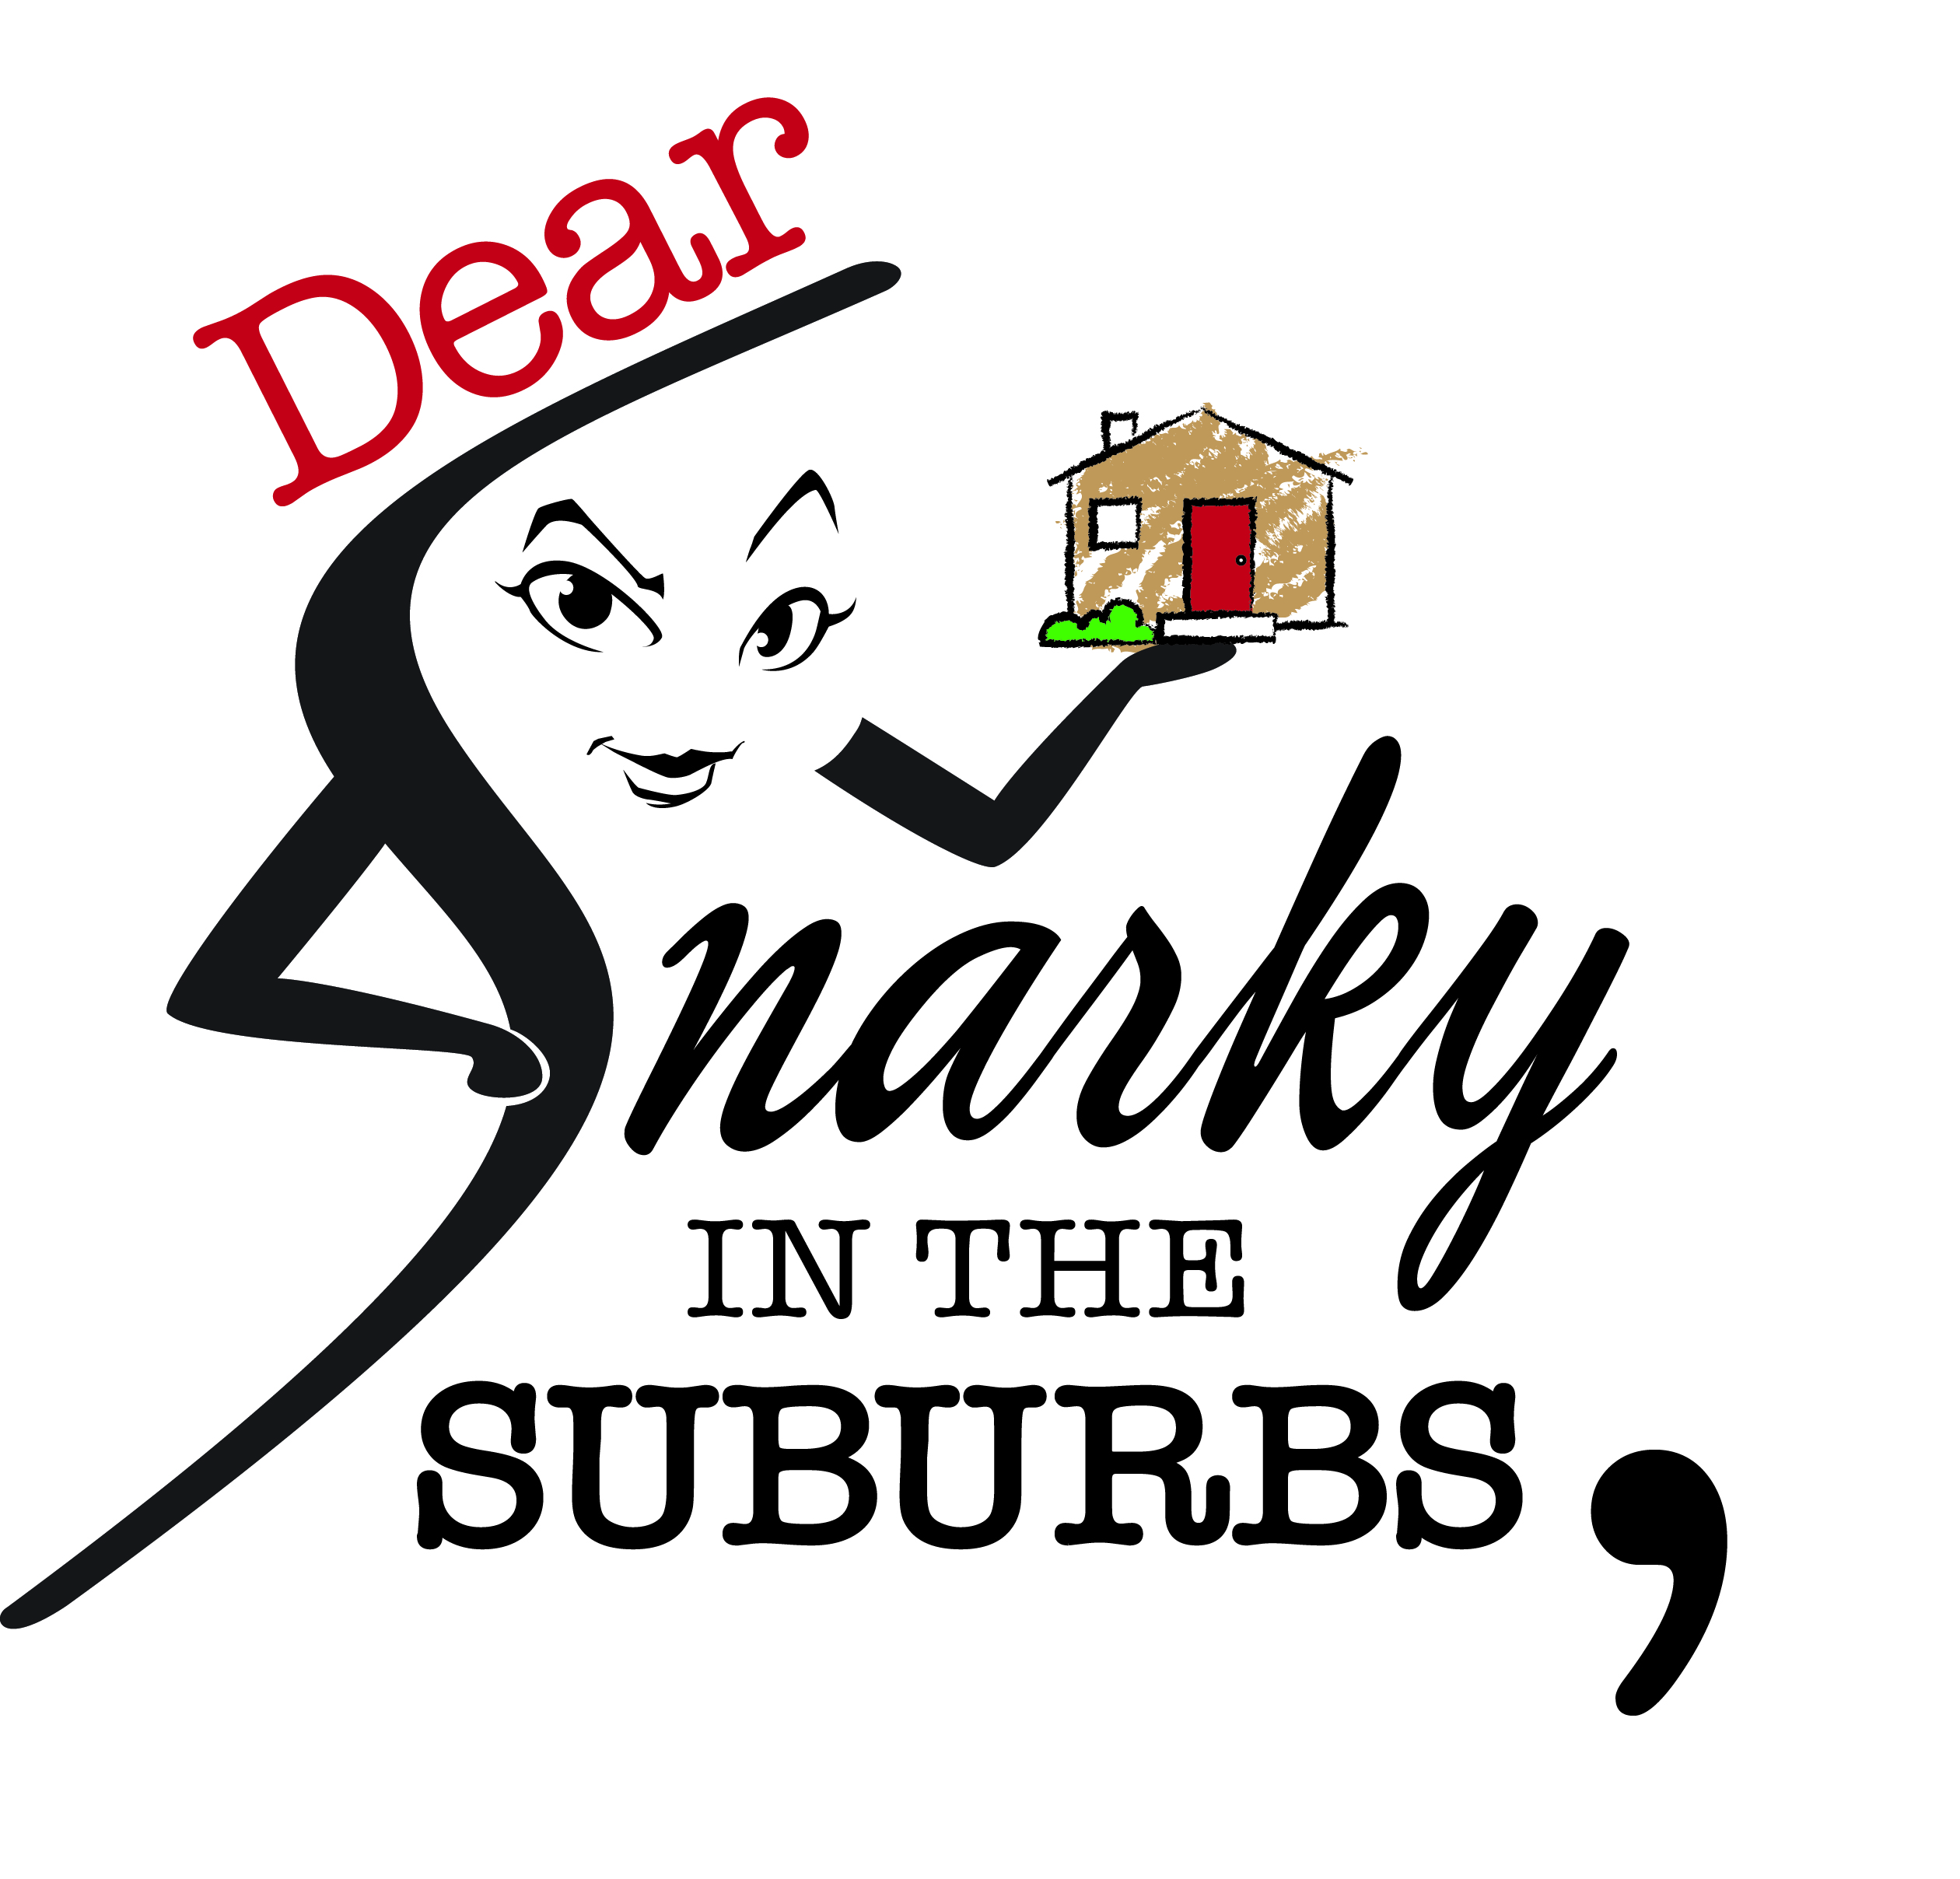 April 2013 – Snarky in the Suburbs